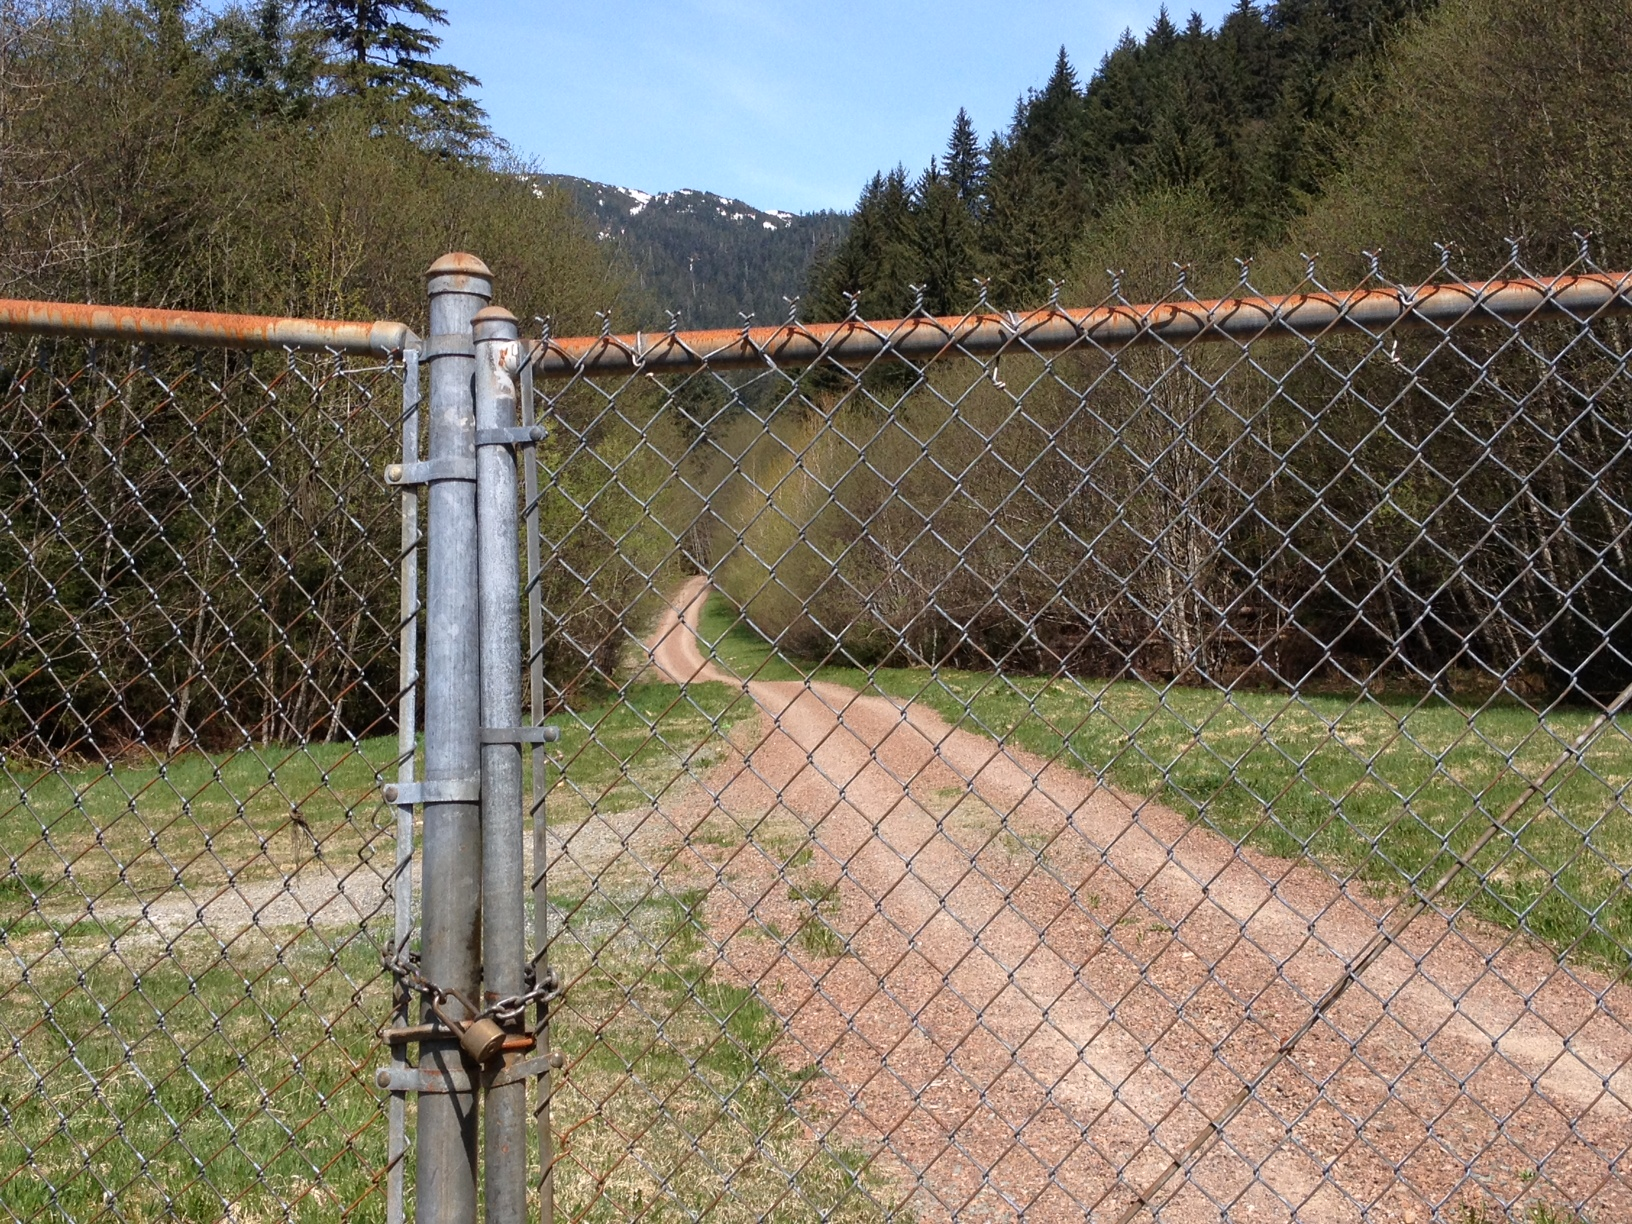 Sandra Gelber's body was found in the water off Salmon Creek Trail about a mile from the gate. (Photo by Lisa Phu/KTOO)